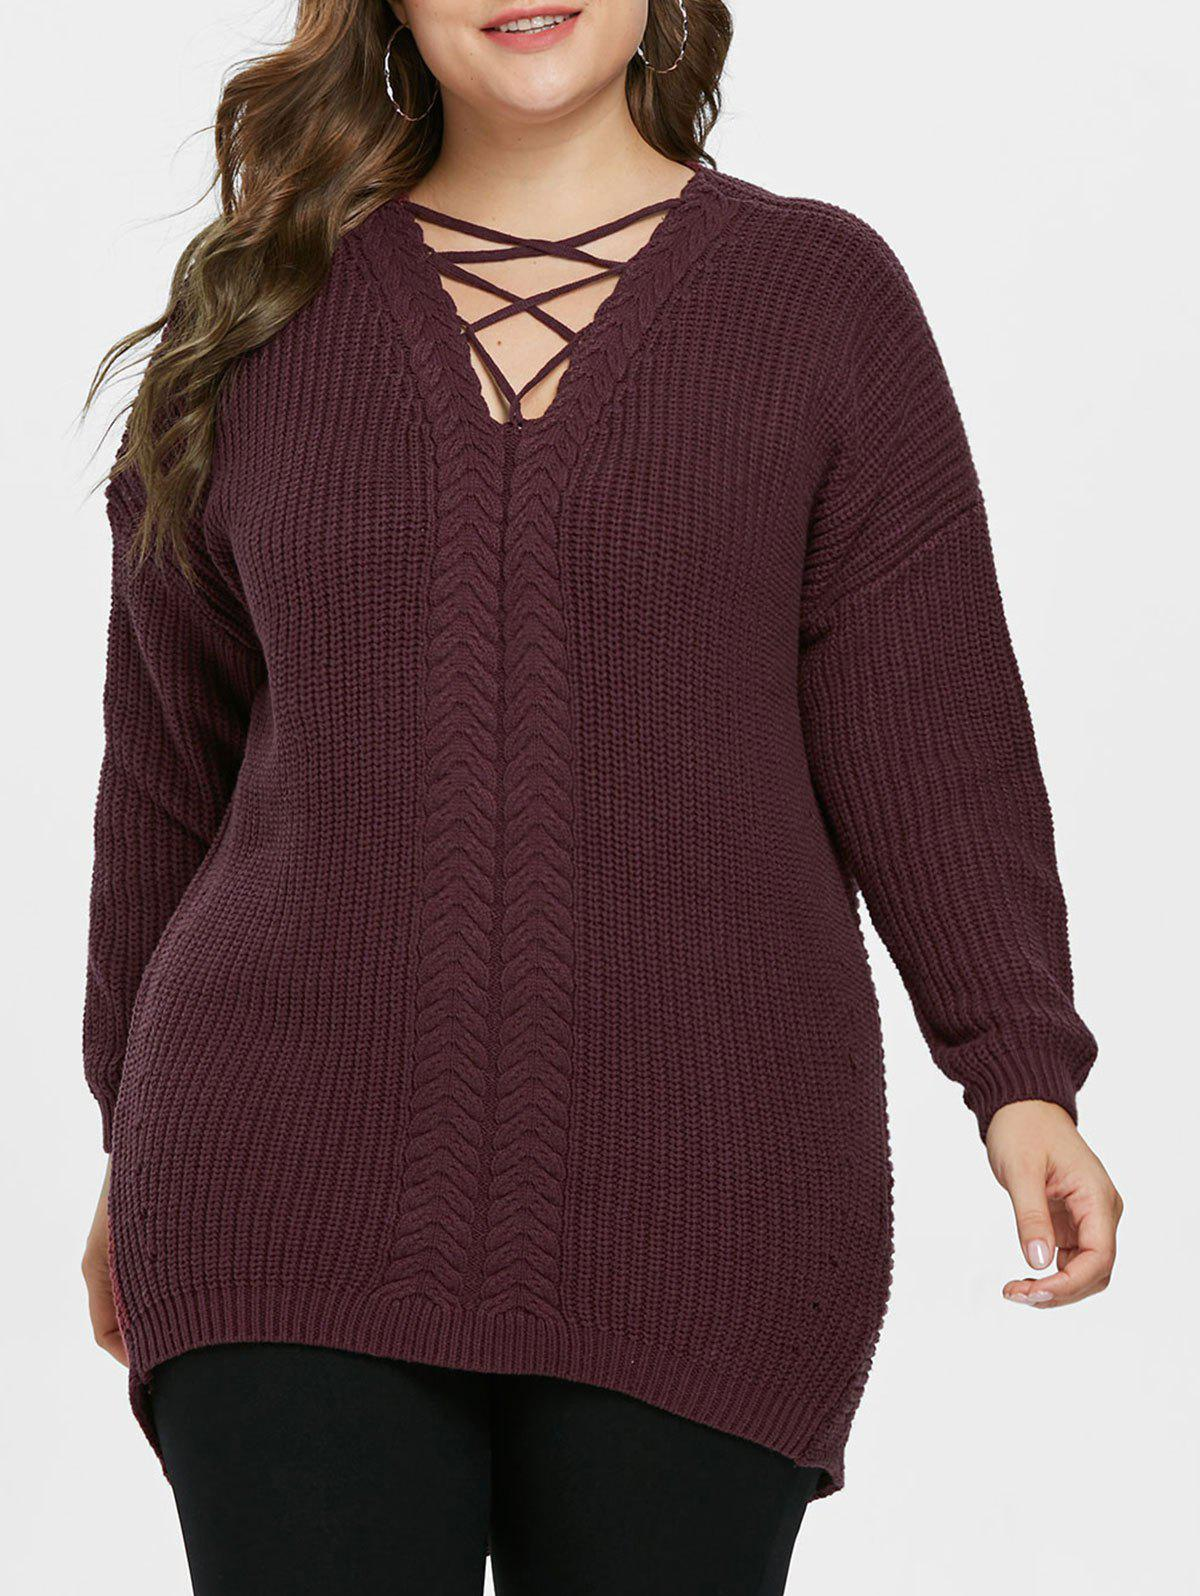 Cheap Criss Cross Plus Size Pullover Sweater